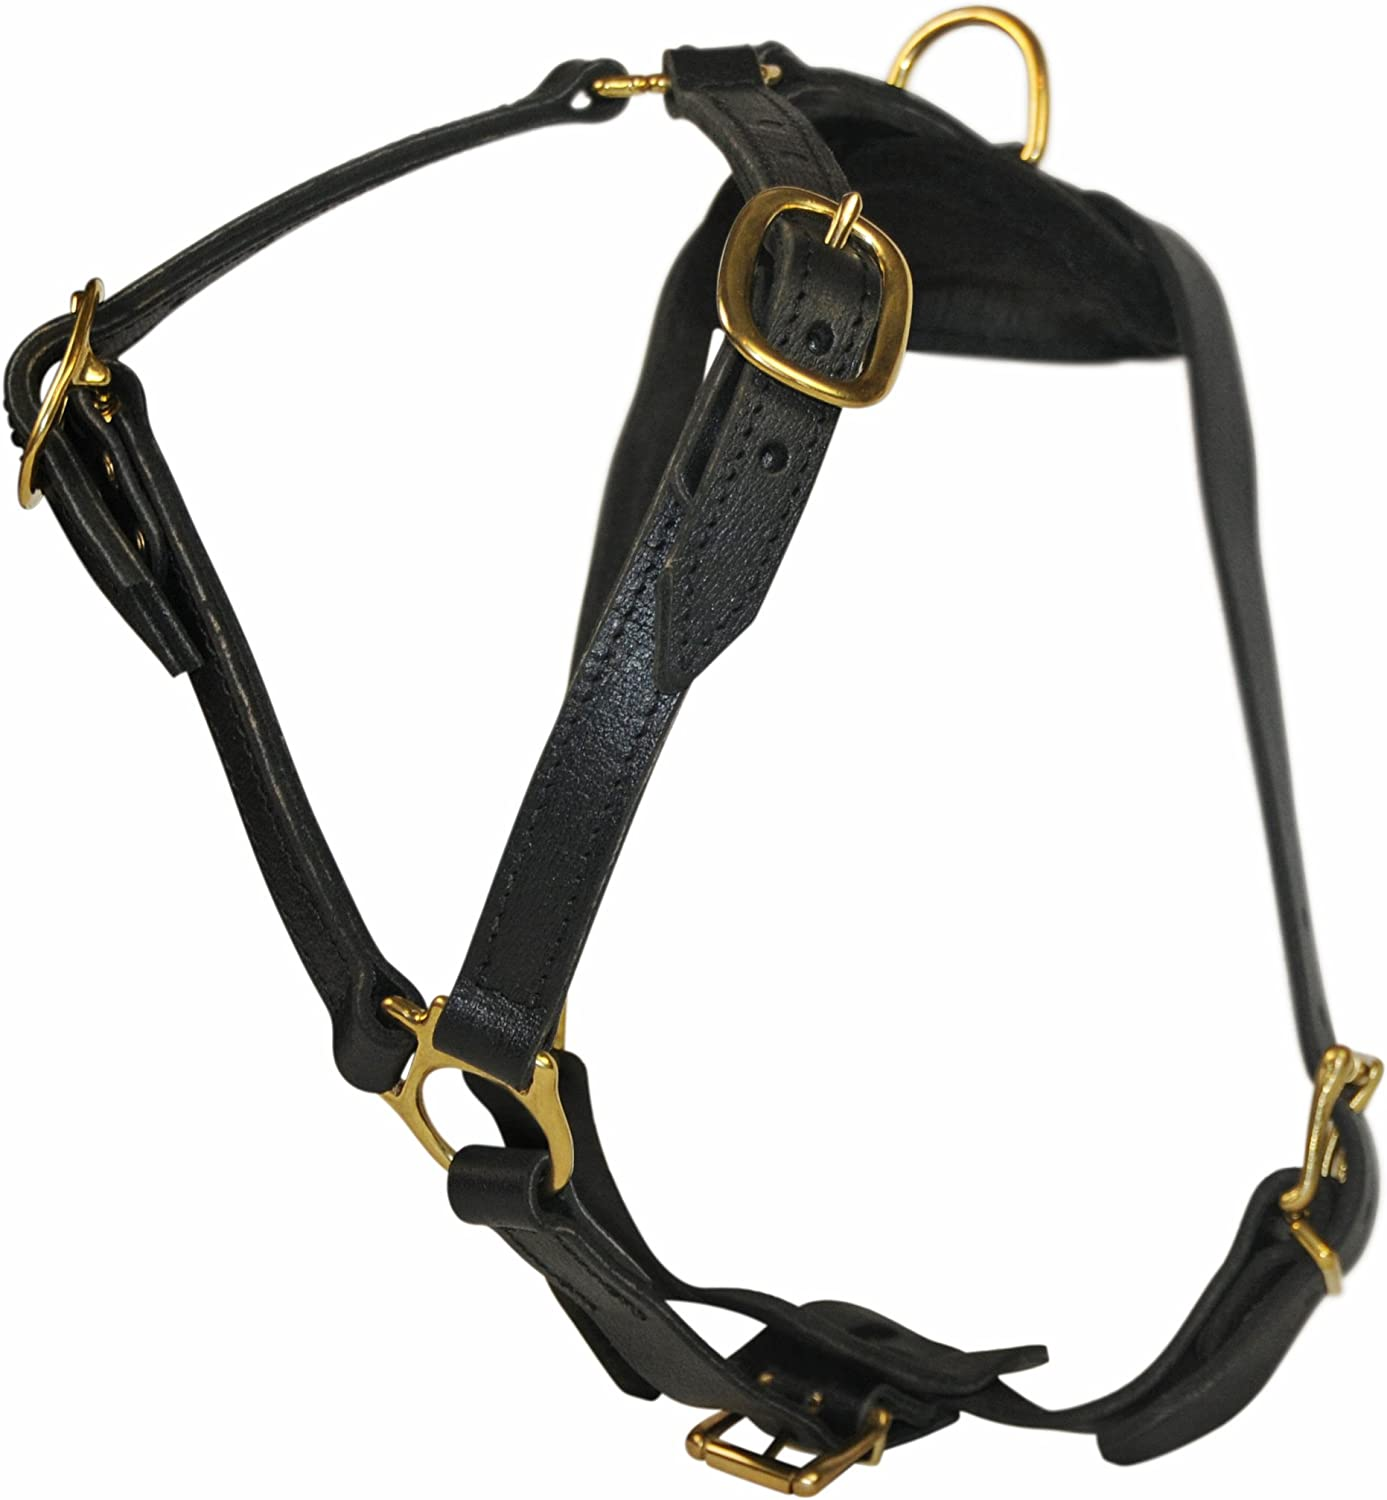 Dean & Tyler D&T Tyler's Choice BRM Tyler's Choice with Handle Solid Brass Hardware Leather Dog Harness, MediumFits Girth, 71cm to 89cm, Brown